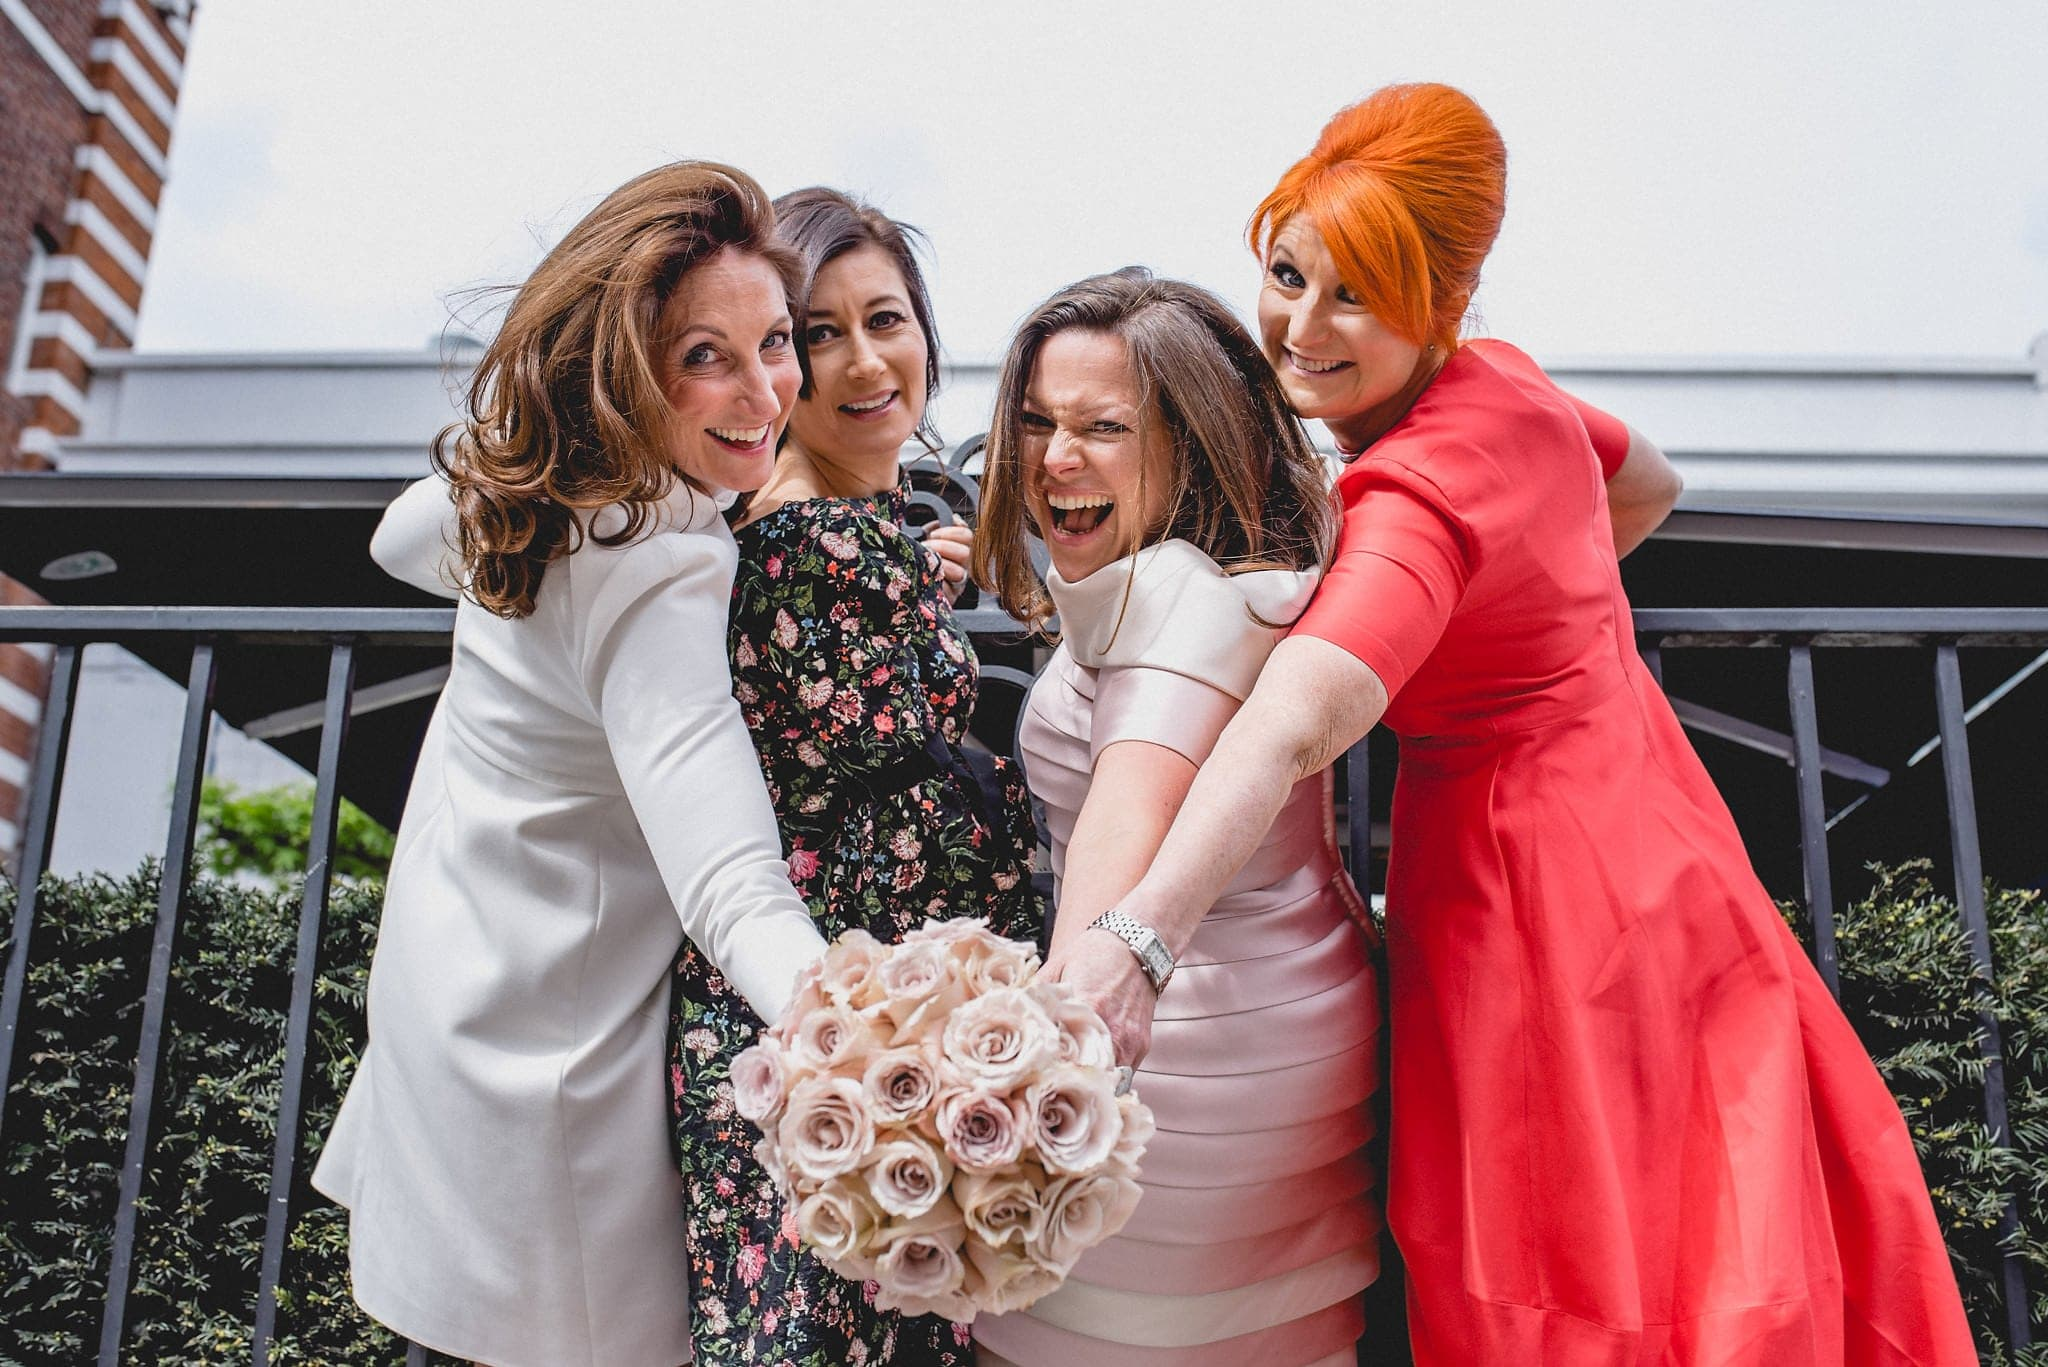 Bride and friends pose on railings of Chelsea venue